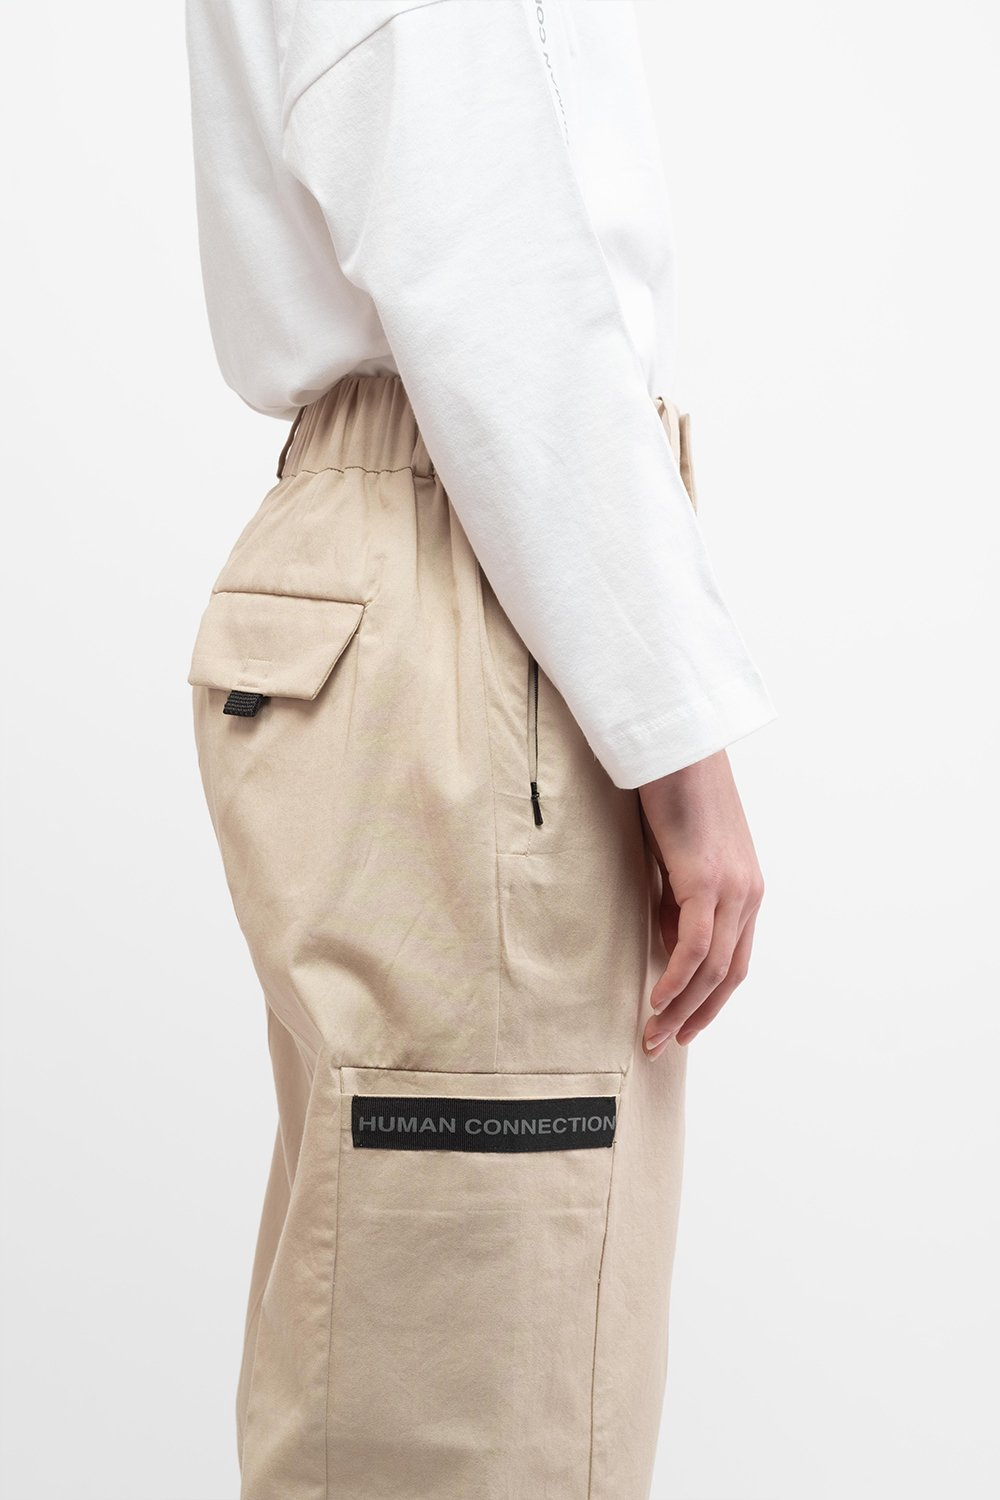 Human Connection Beige Cargo Pants - BISKIT